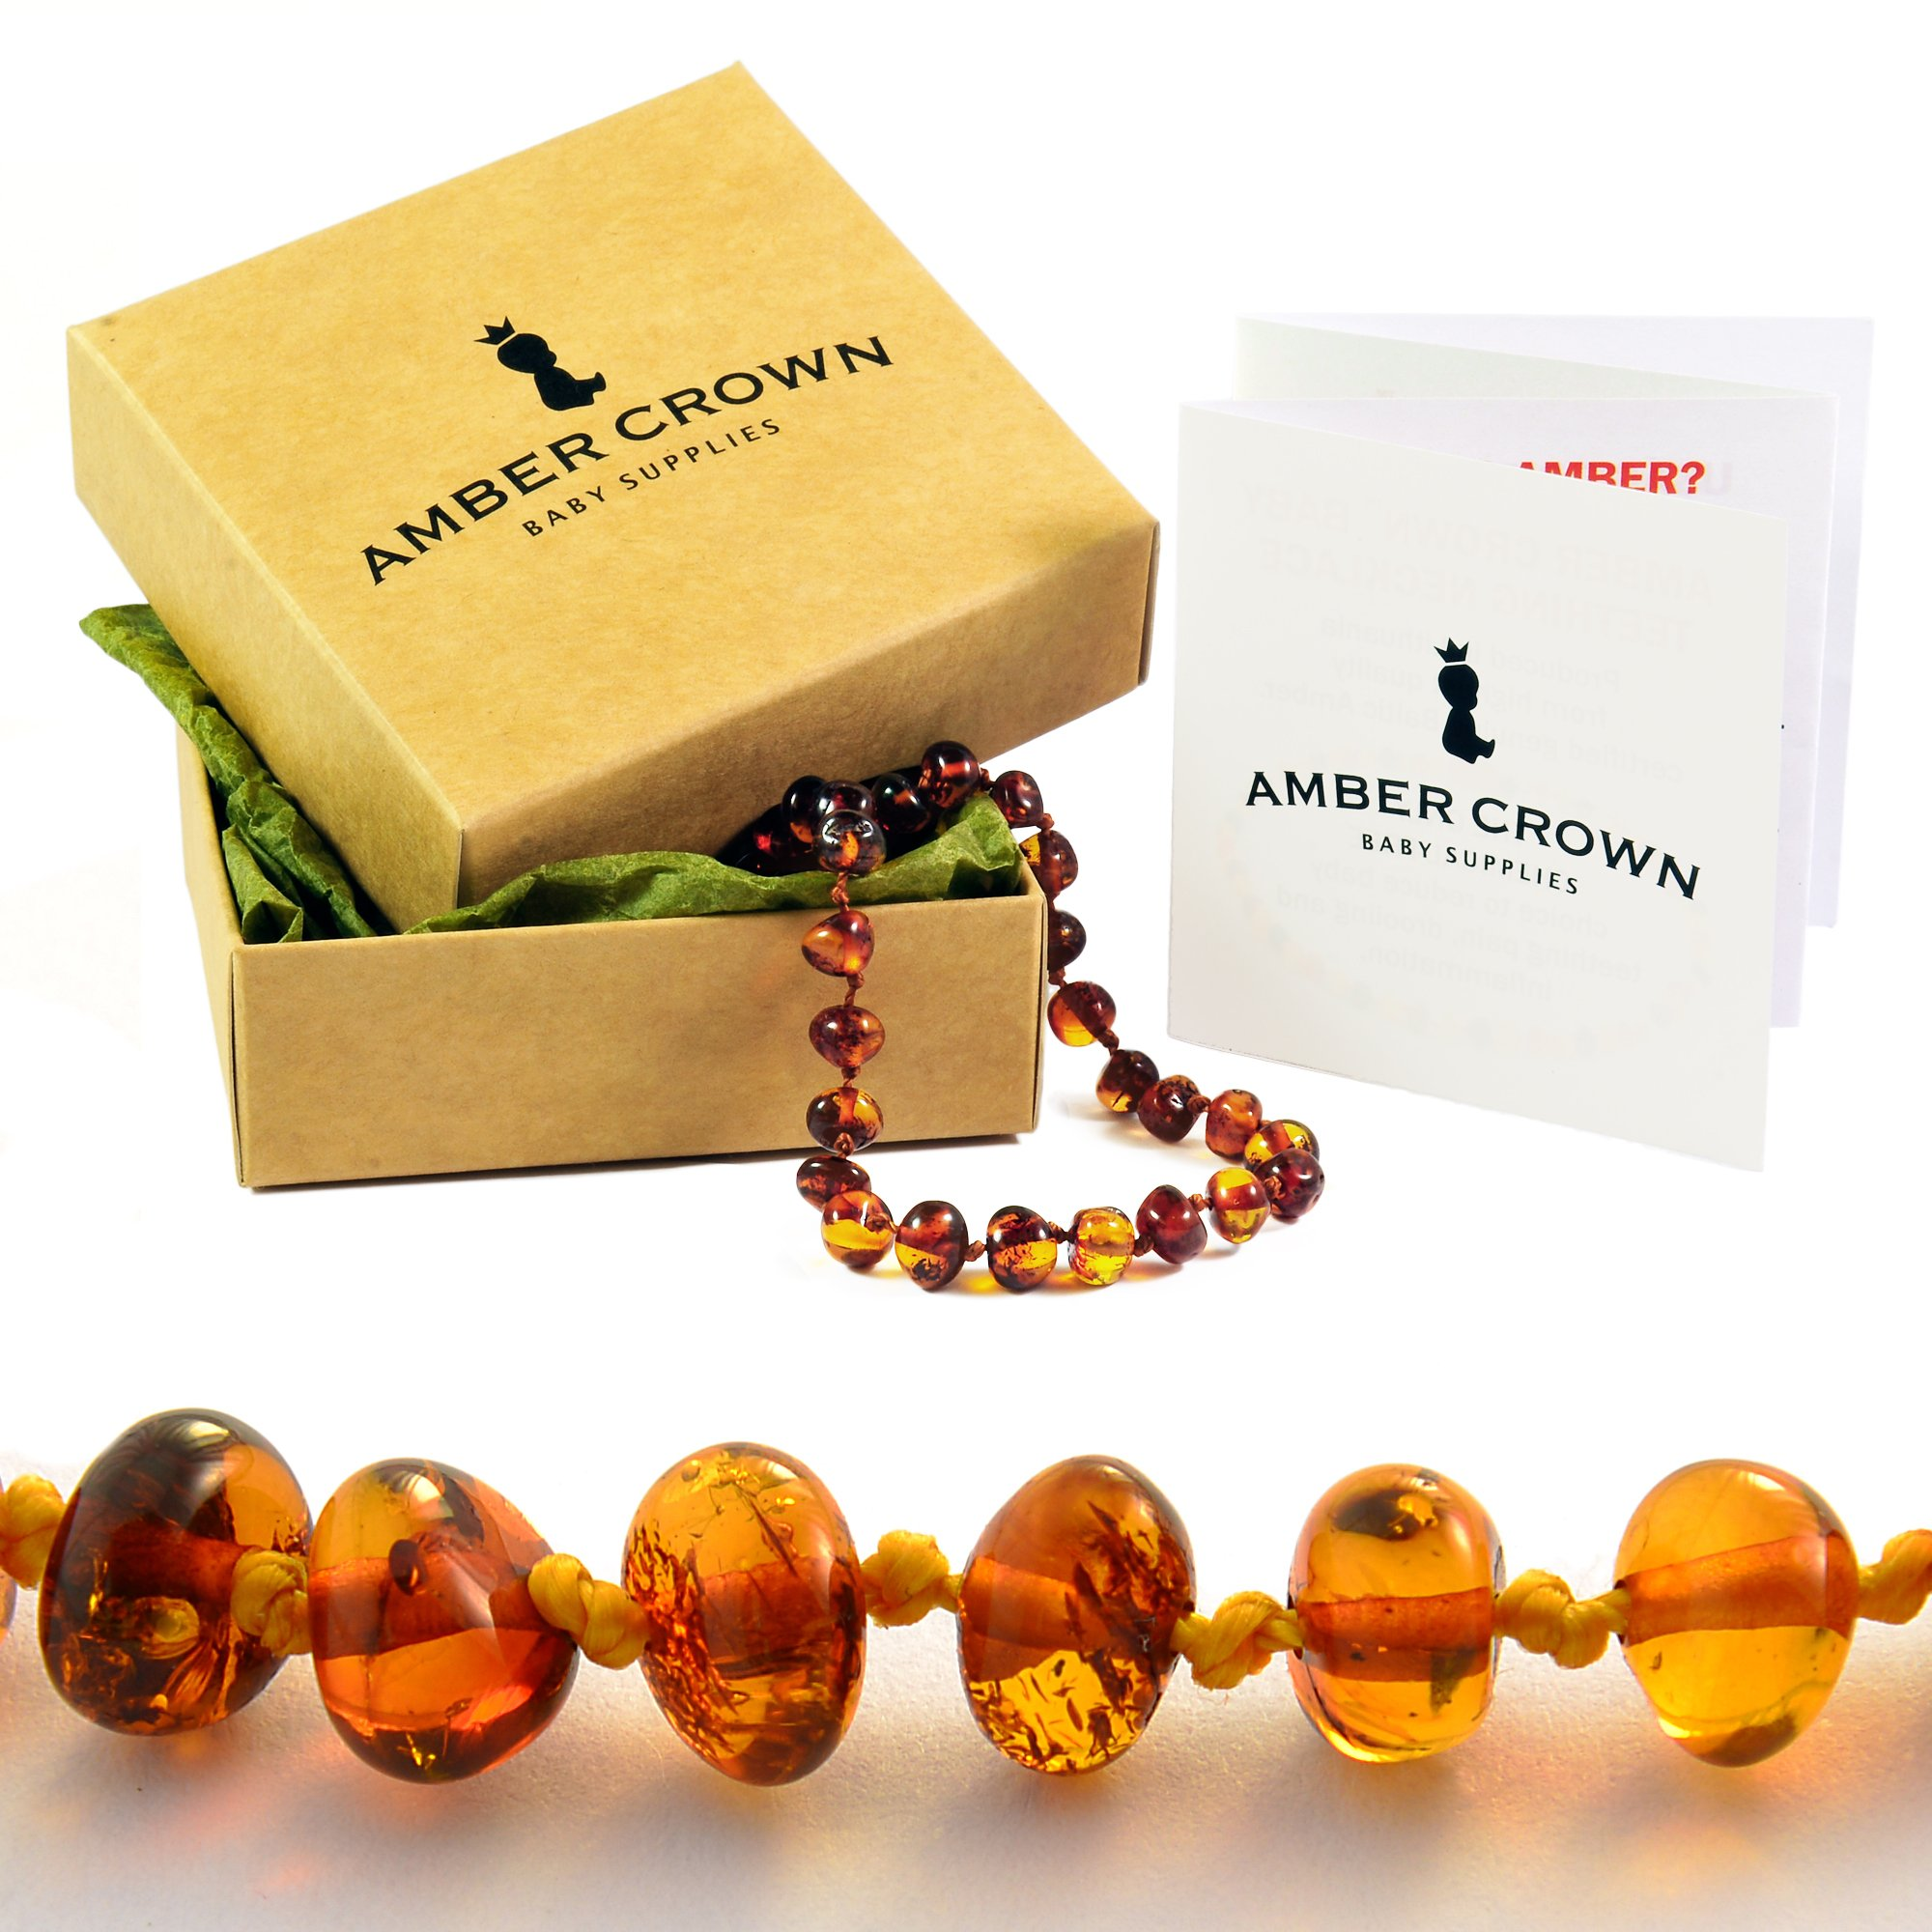 Amber Crown Baltic Amber Teething Bracelet / Anklet for Babies (Honey Color) - Anti Inflammatory, Drooling & Teething Pain Reduce - Certificated Premium Quality Baltic Amber Jewelry